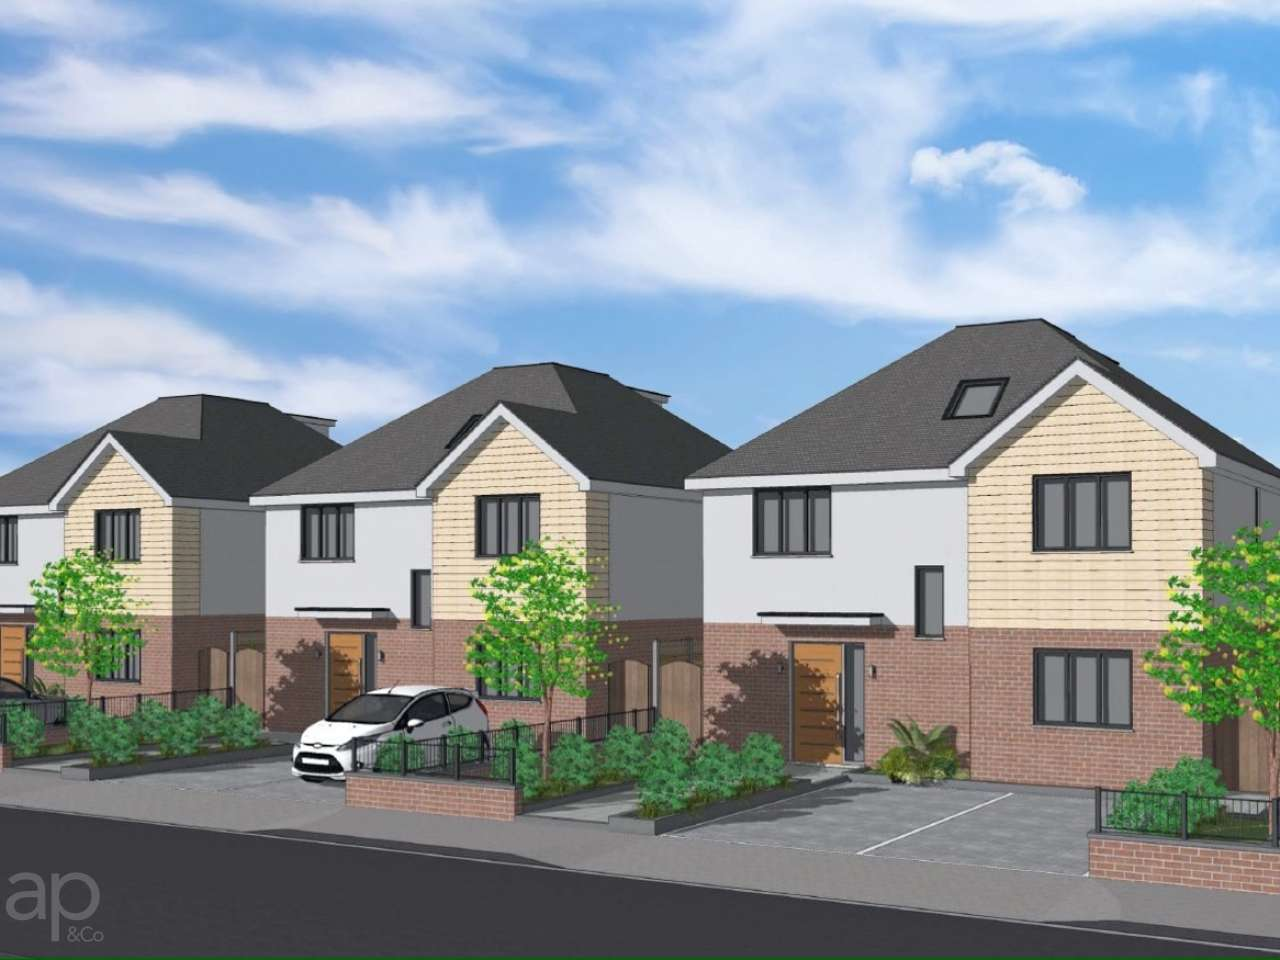 Plot 1  Green Drift, Royston SG8 5DB